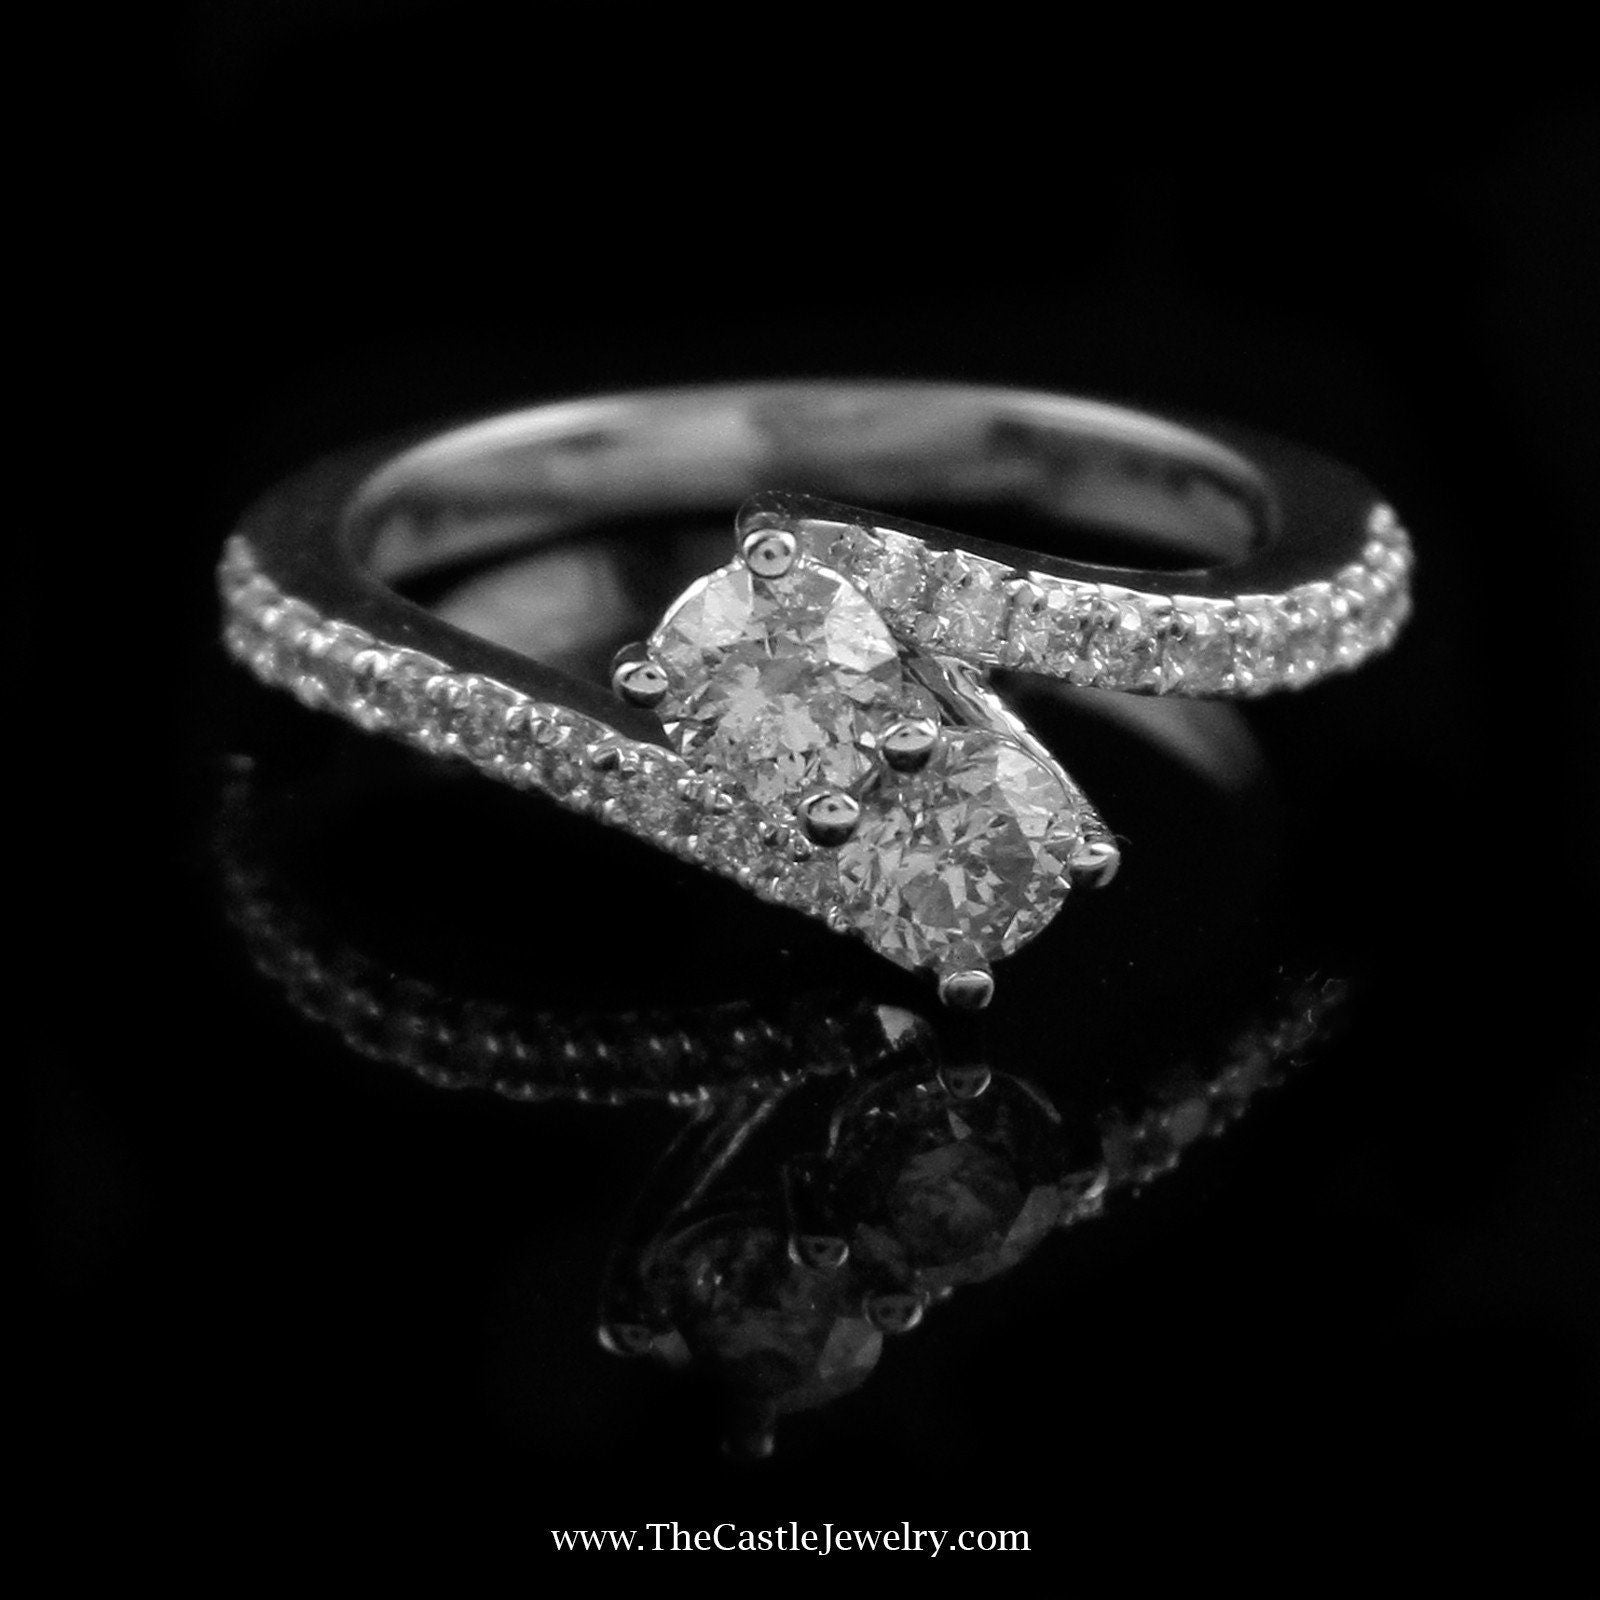 Beautiful 1cttw My True Love & My Best Friend Diamond Ring Crafted in 14K White Gold